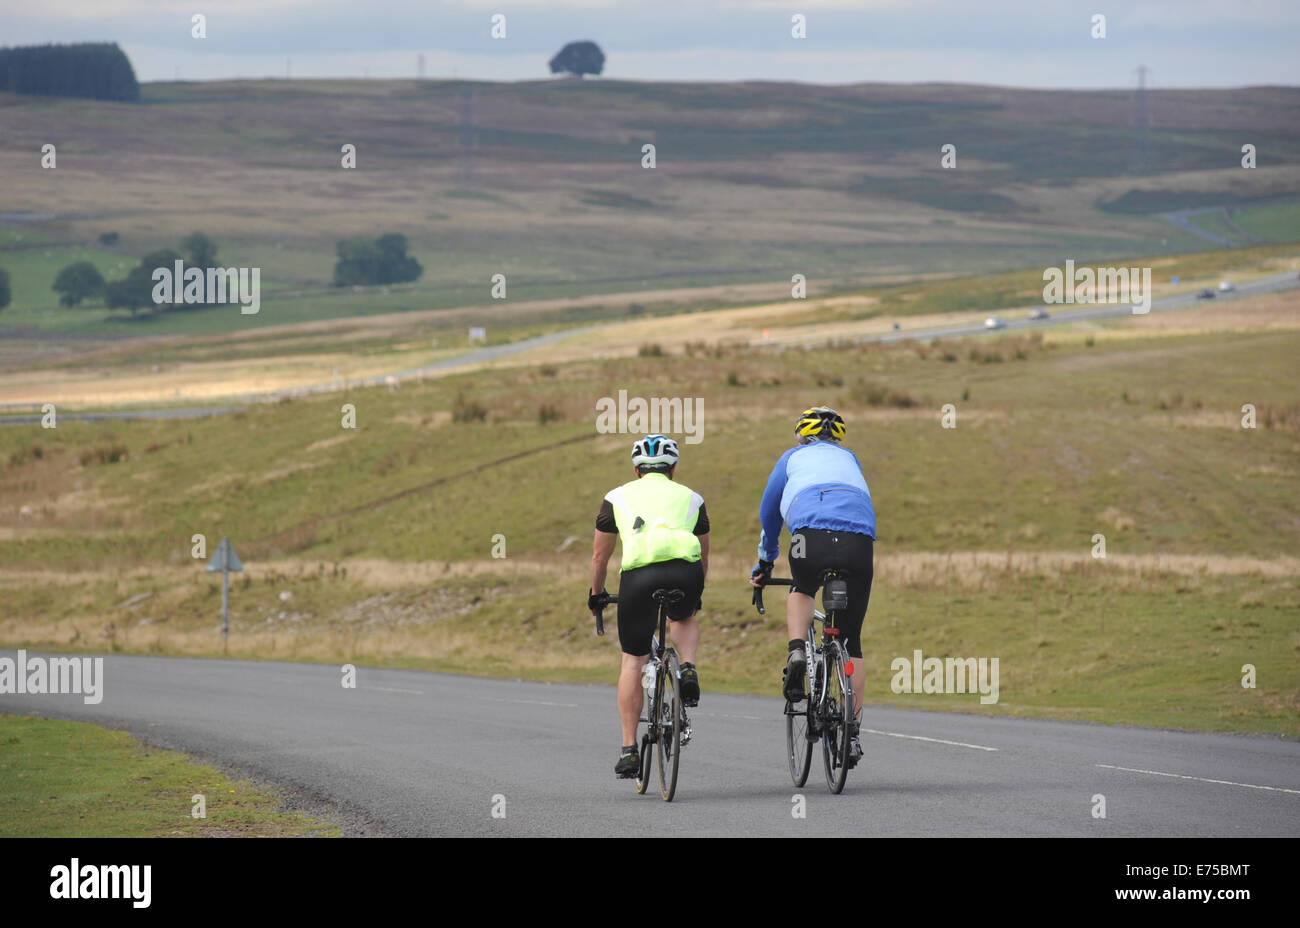 CYCLISTS ON A ROAD NEAR SHAP IN THE LAKE DISTRICT RE CYCLING OUTDOOR PURSUITS FITNESS EXERCISE BIKES MEN BIKING - Stock Image